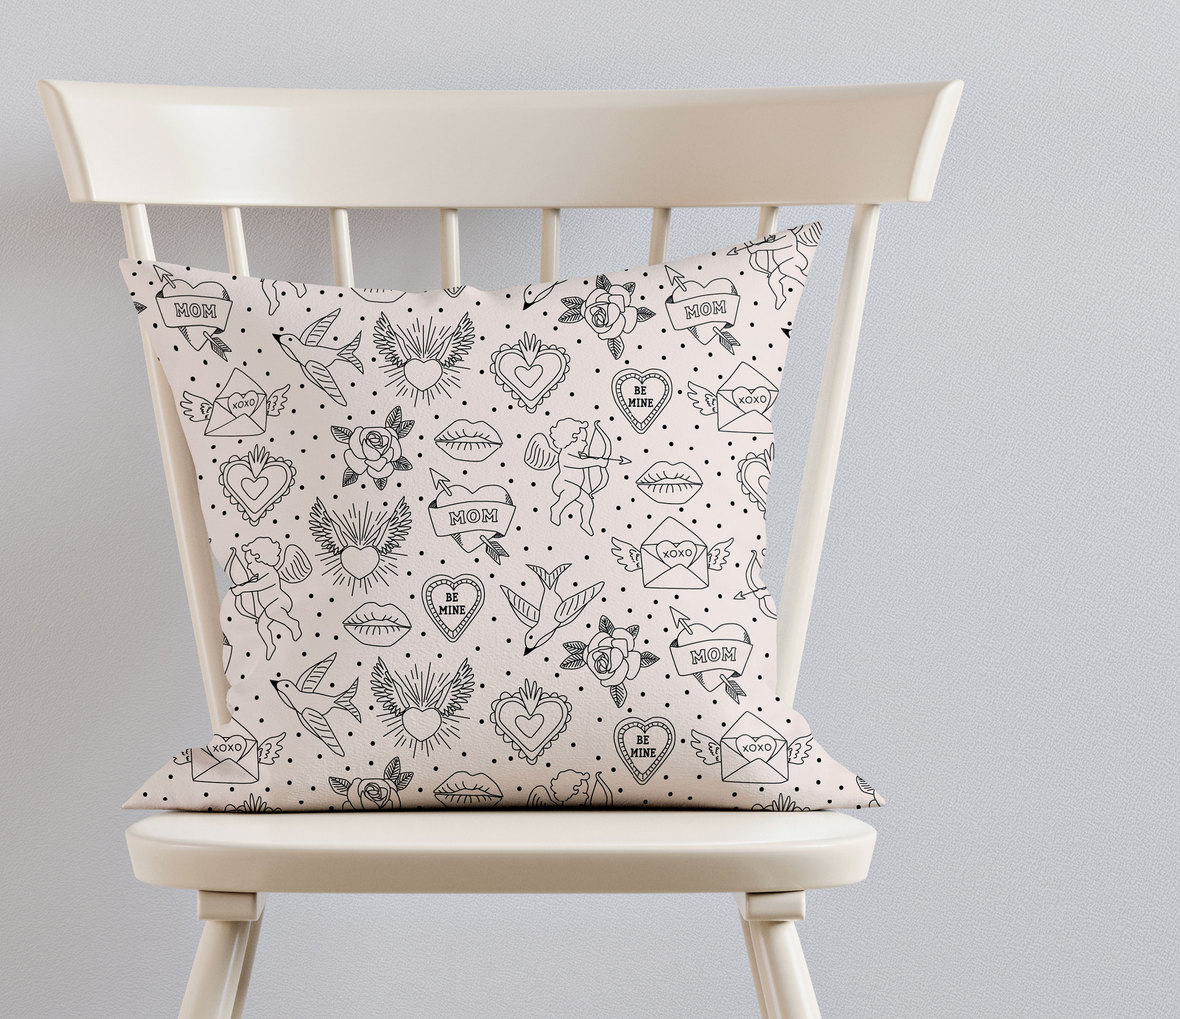 Pillow-on-Ivory-Chair-1